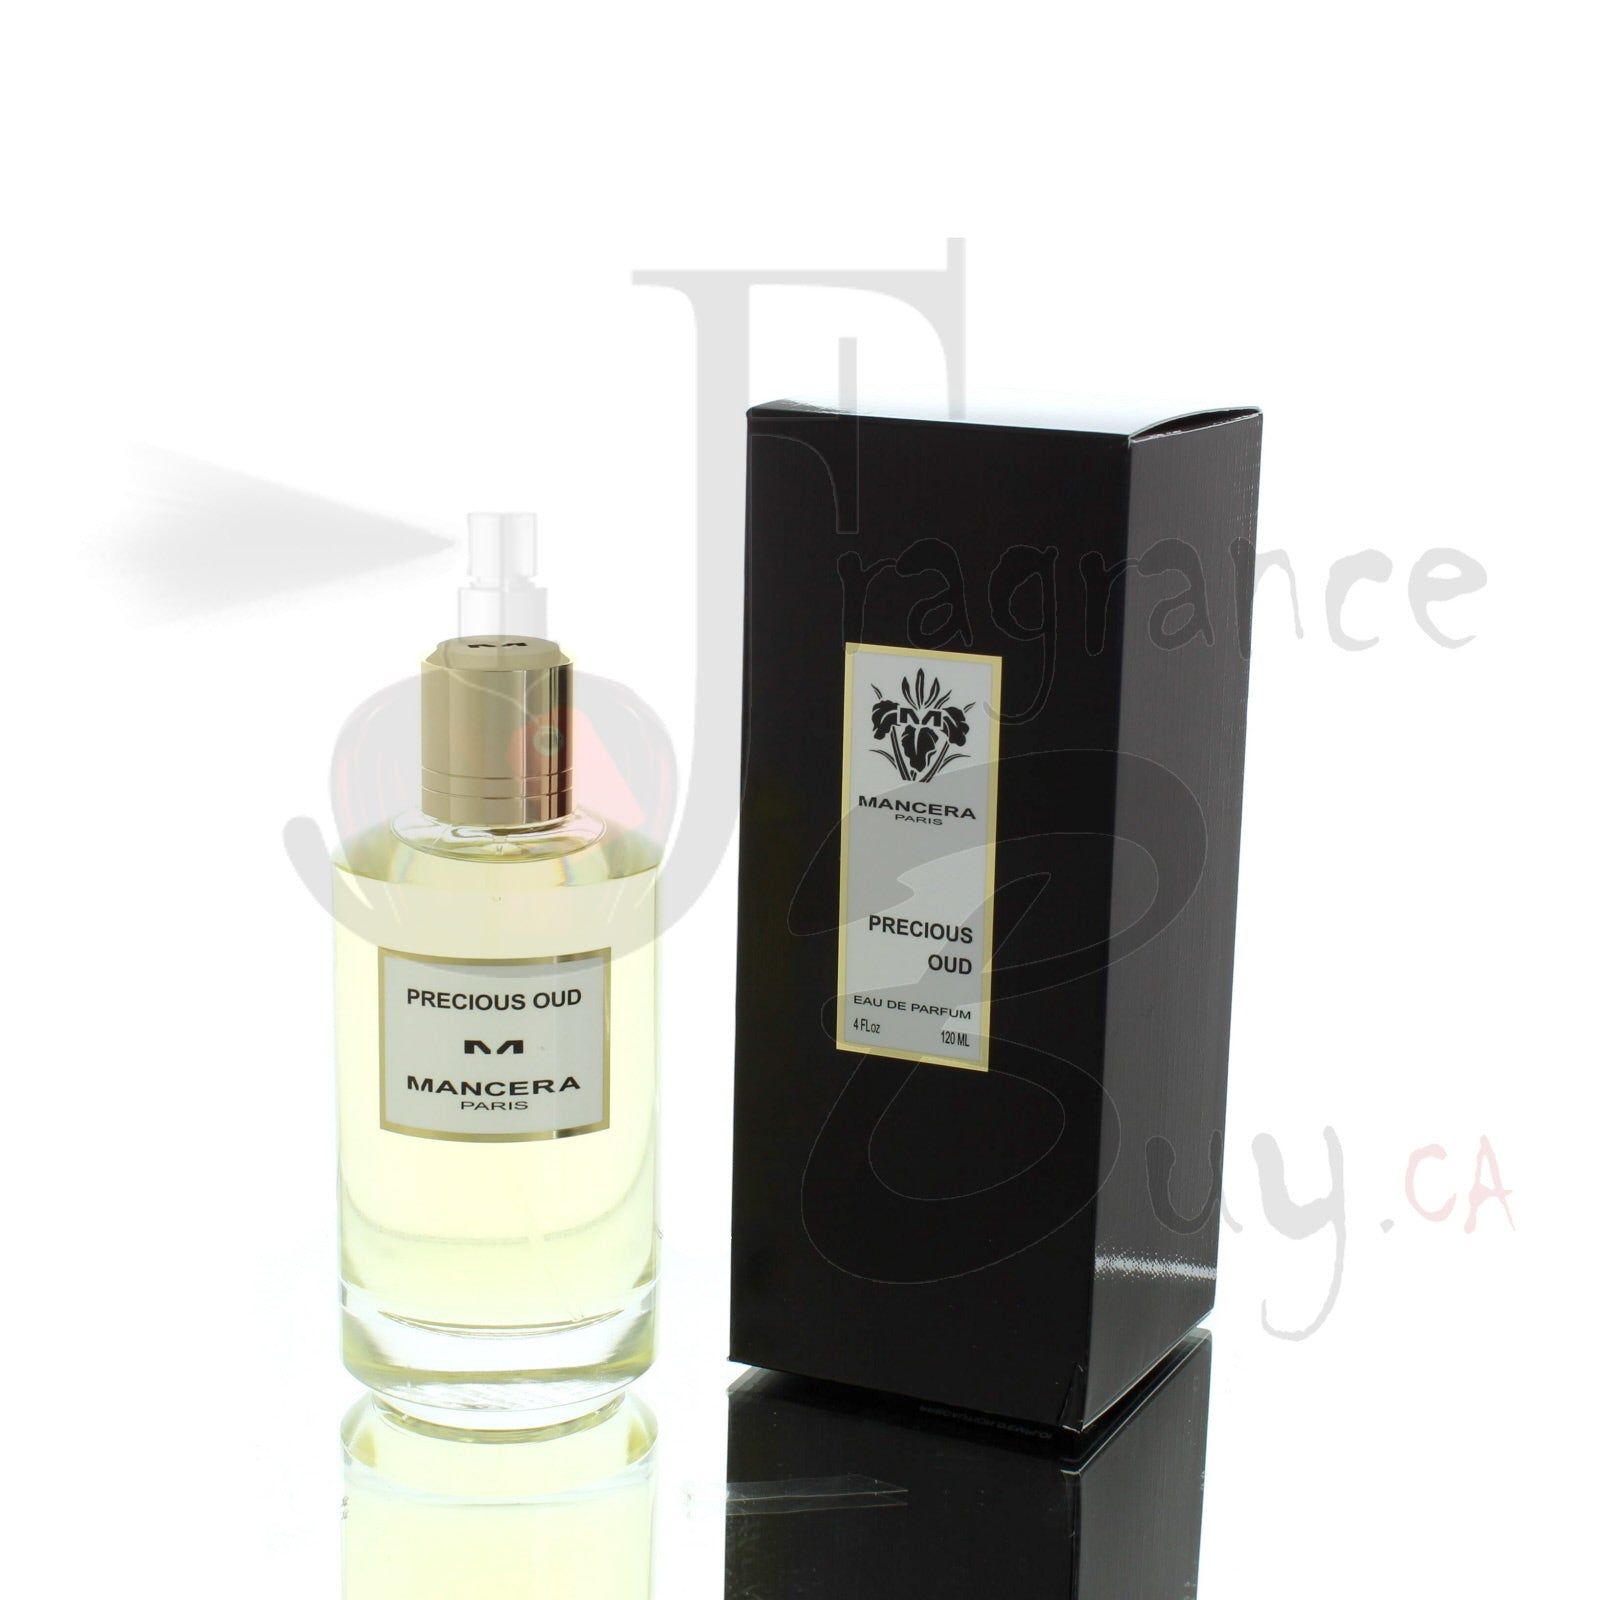 Mancera Precious Oud For Man/Woman